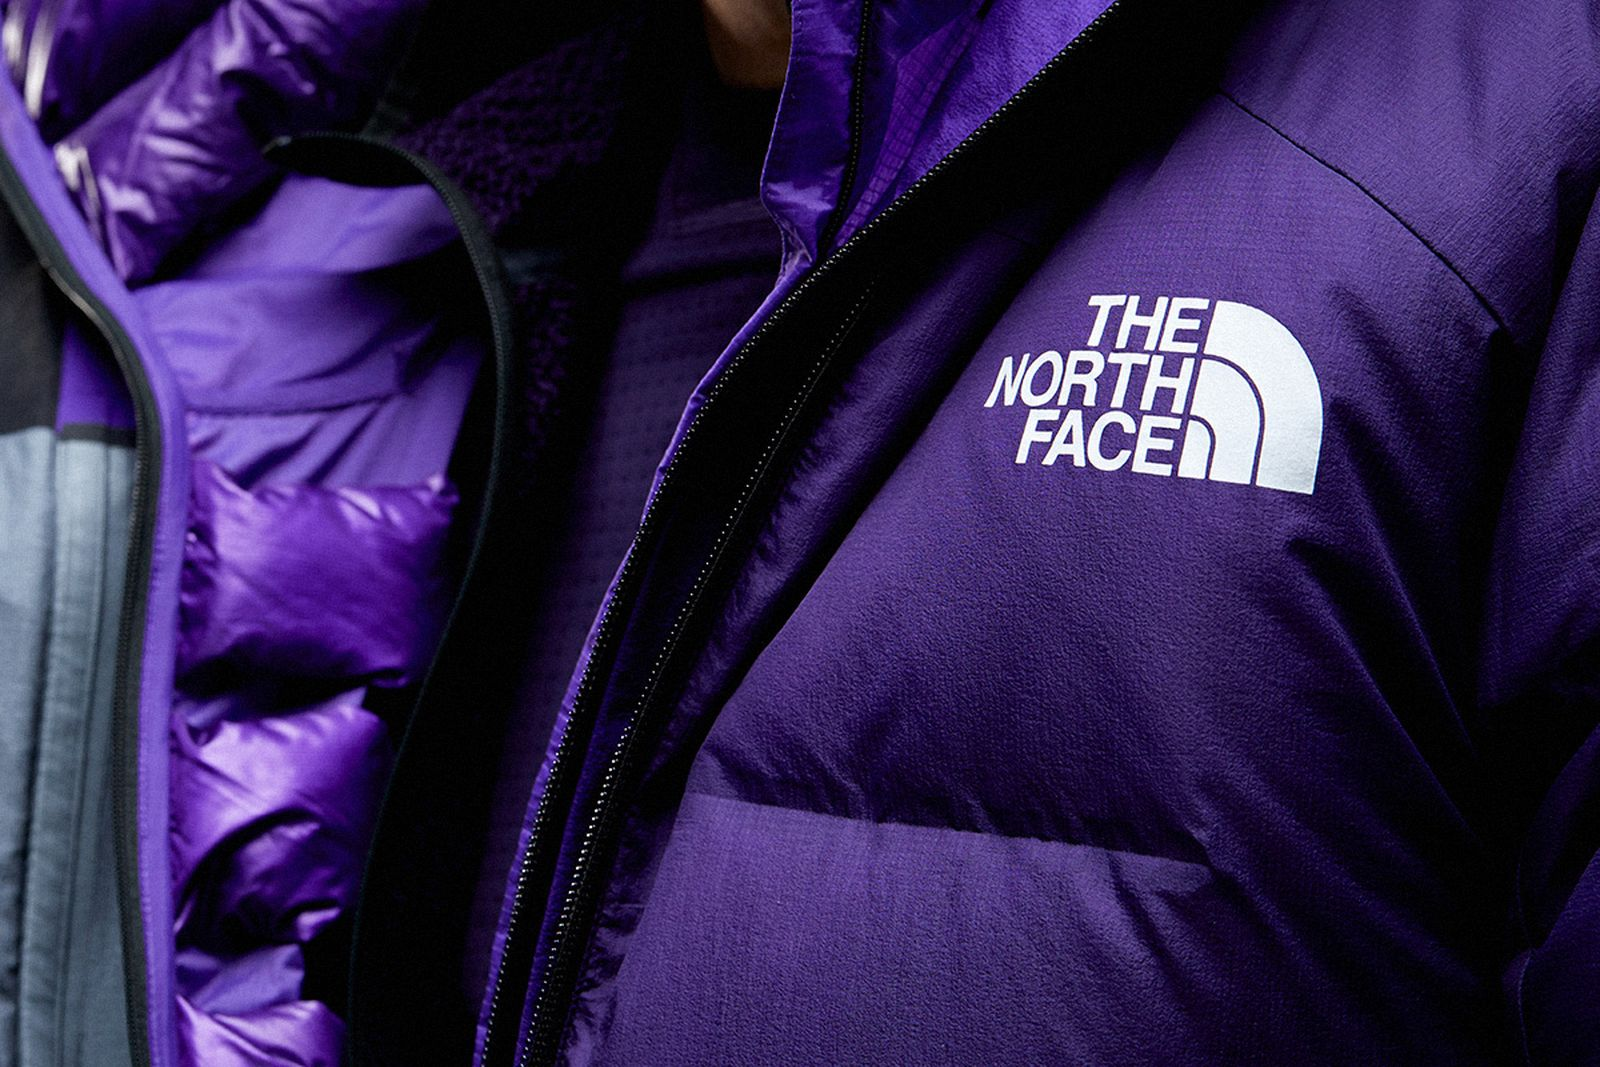 the-north-face-special-report-04